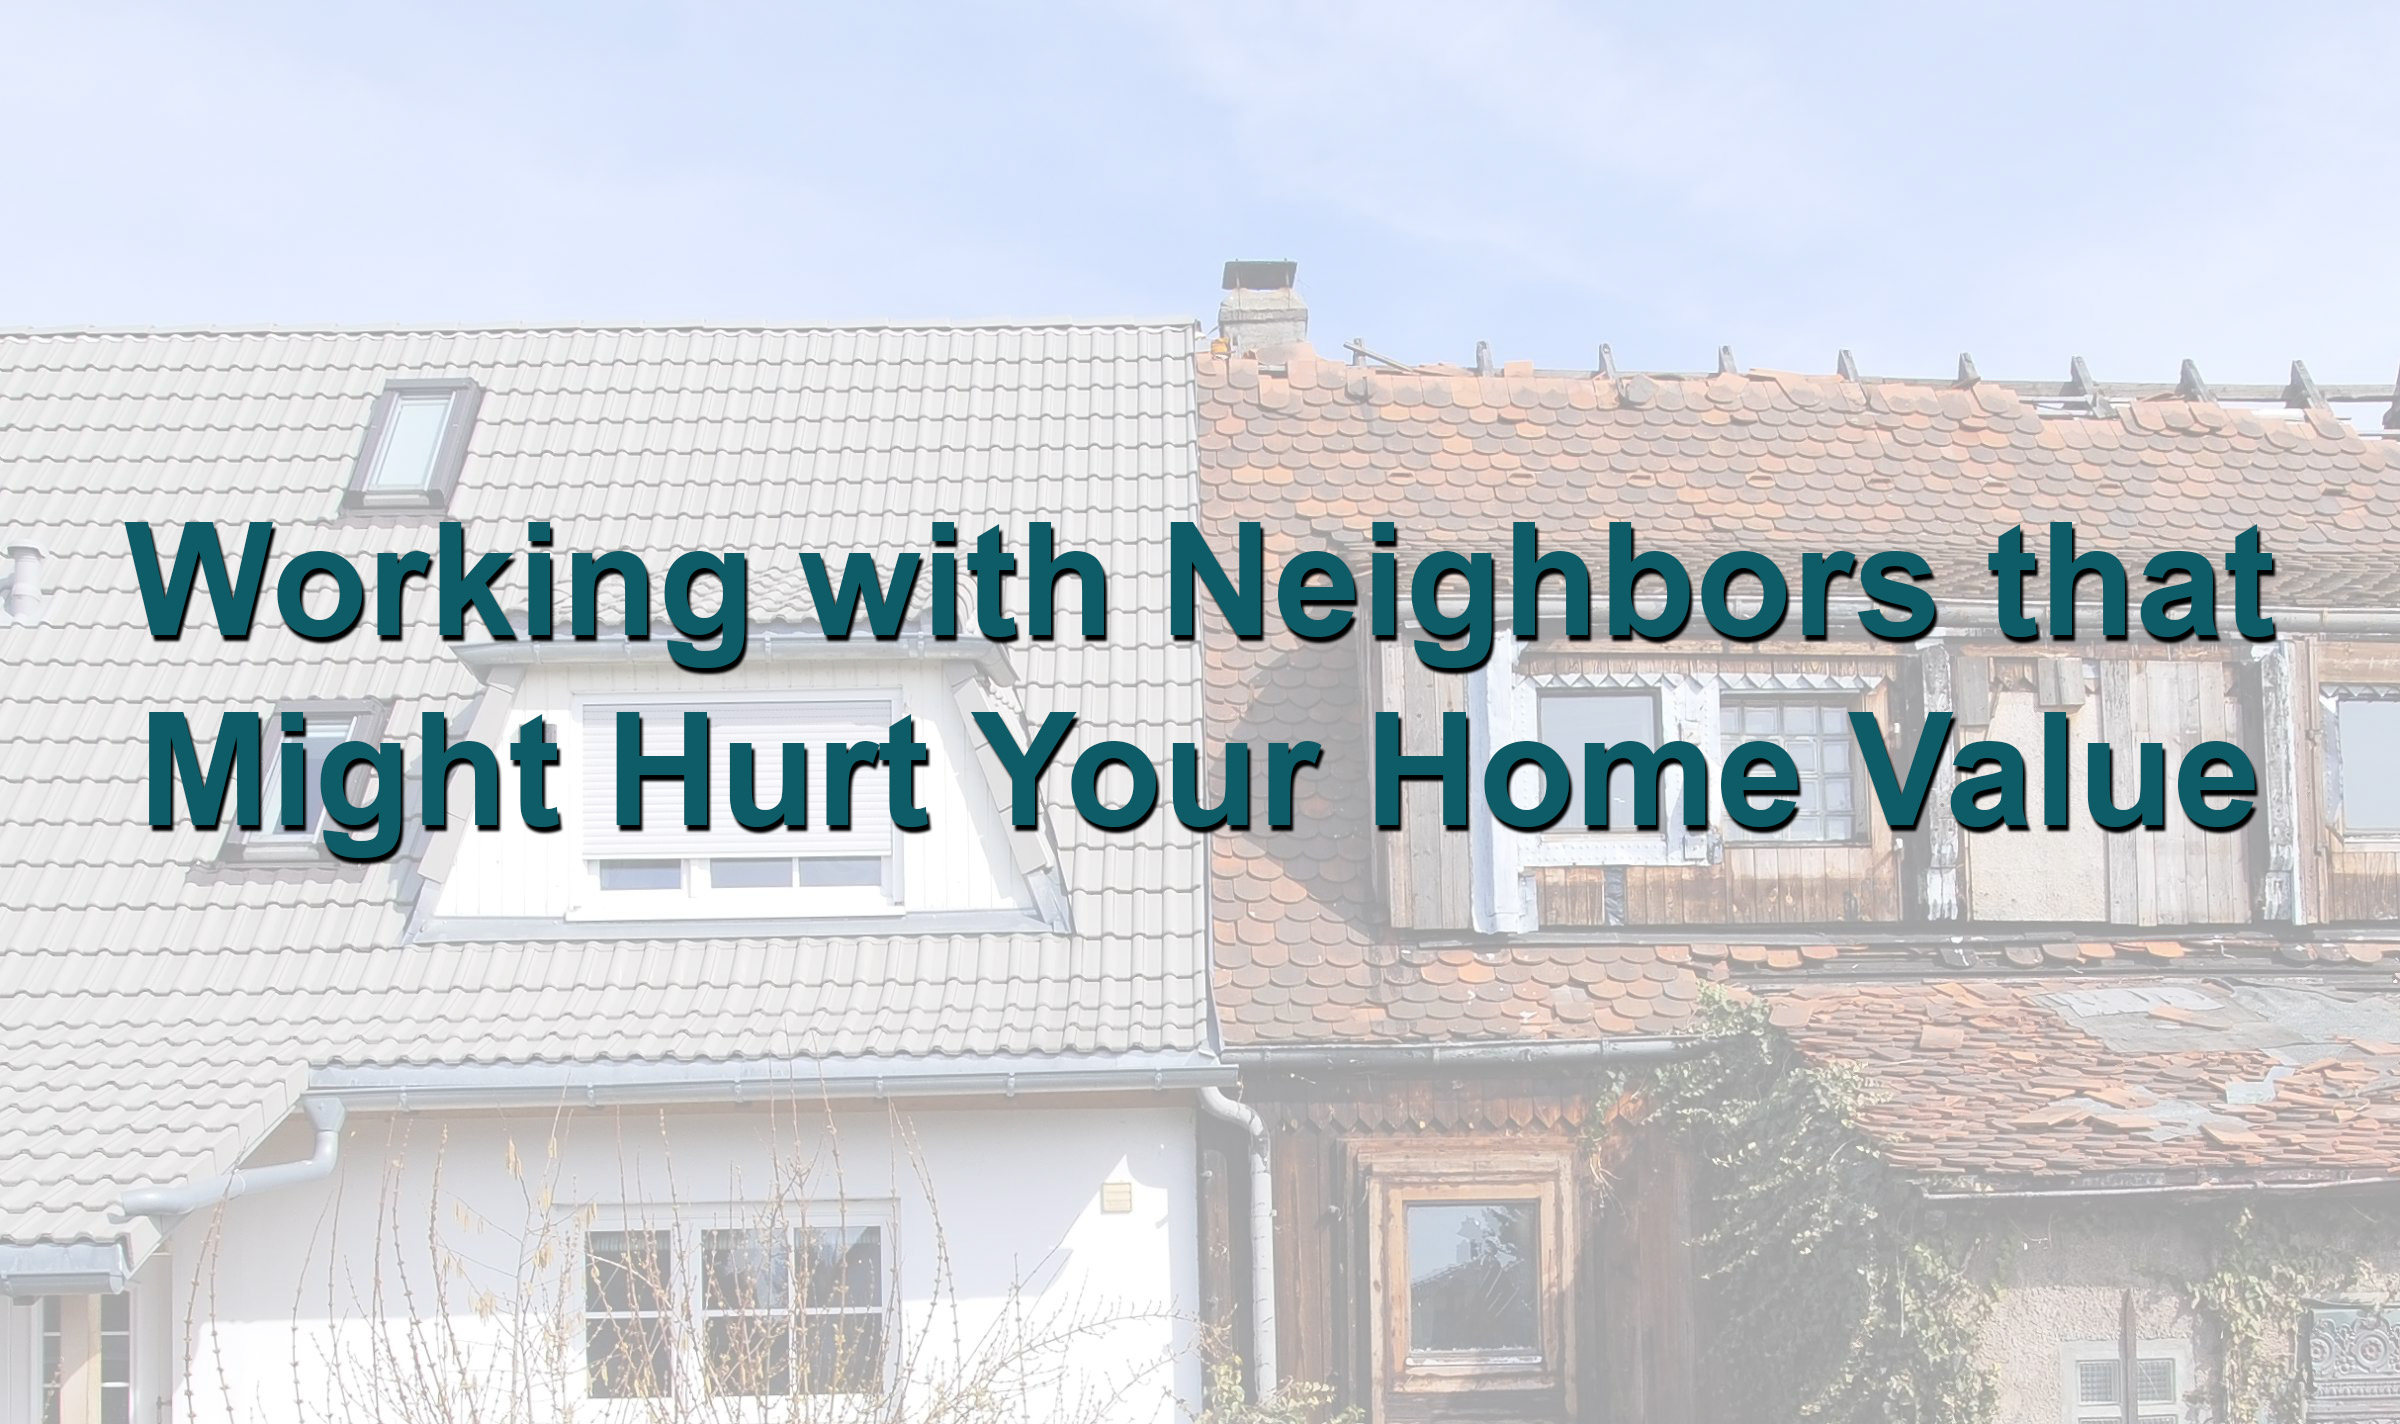 Working with Neighbors that Might Hurt Your Home Value